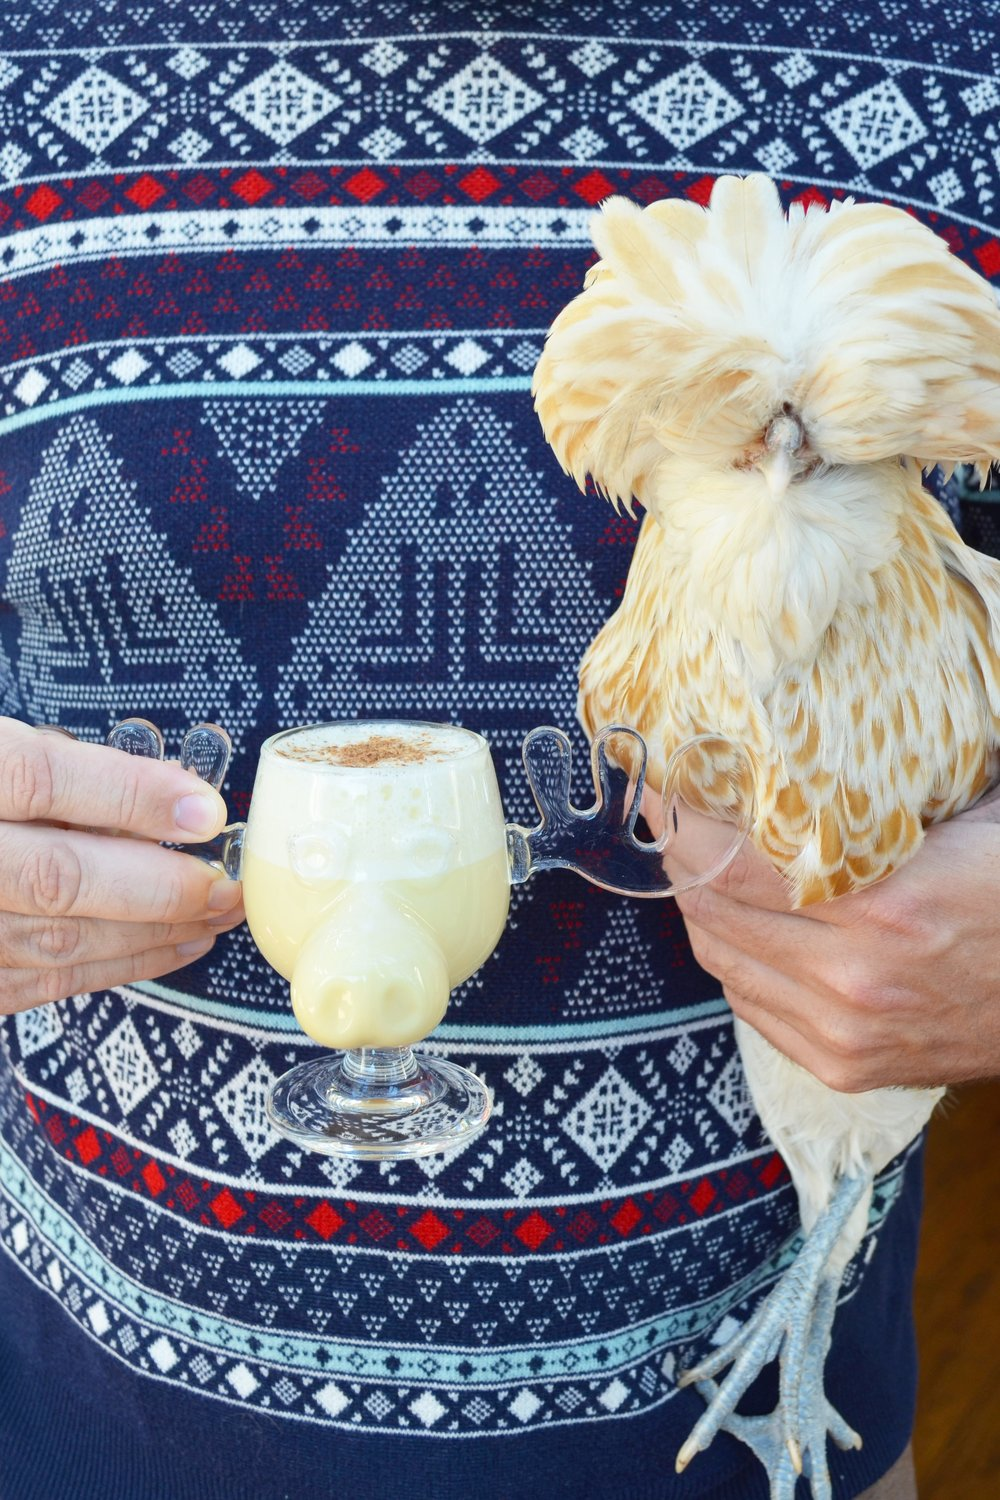 Eggnog and a muppet | drinkingwithchickens.com